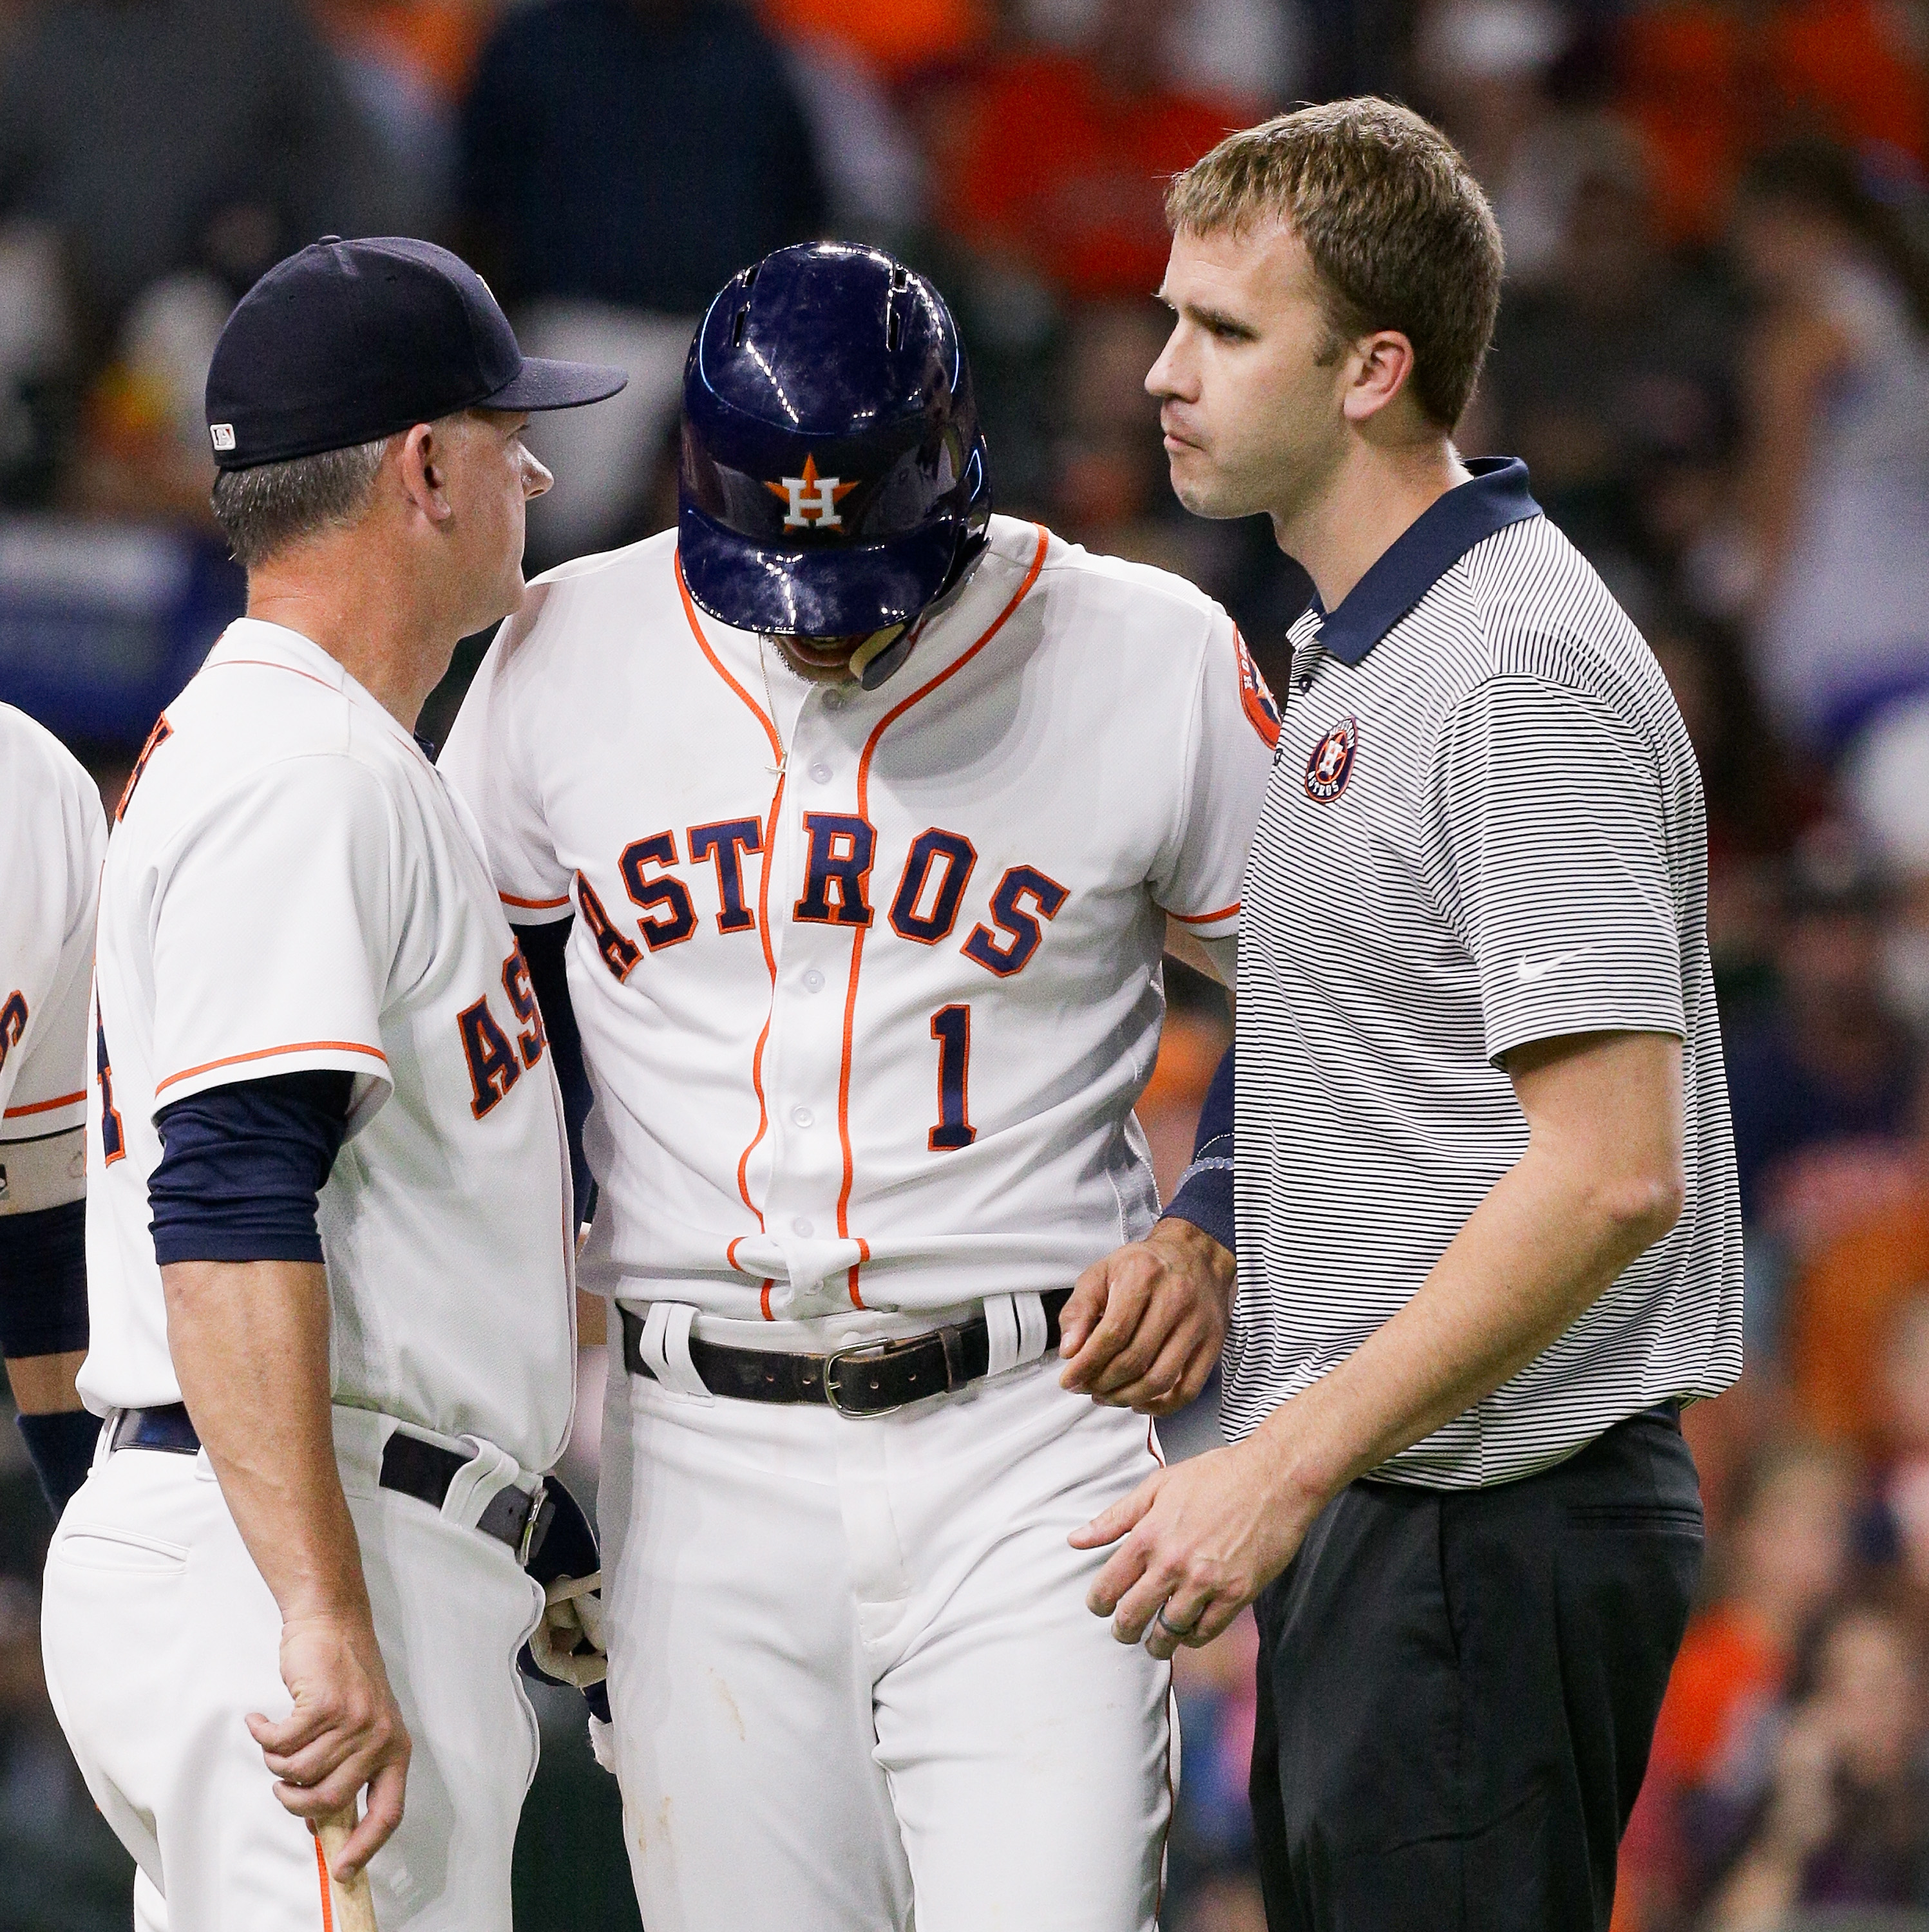 816877958-seattle-mariners-v-houston-astros.jpg